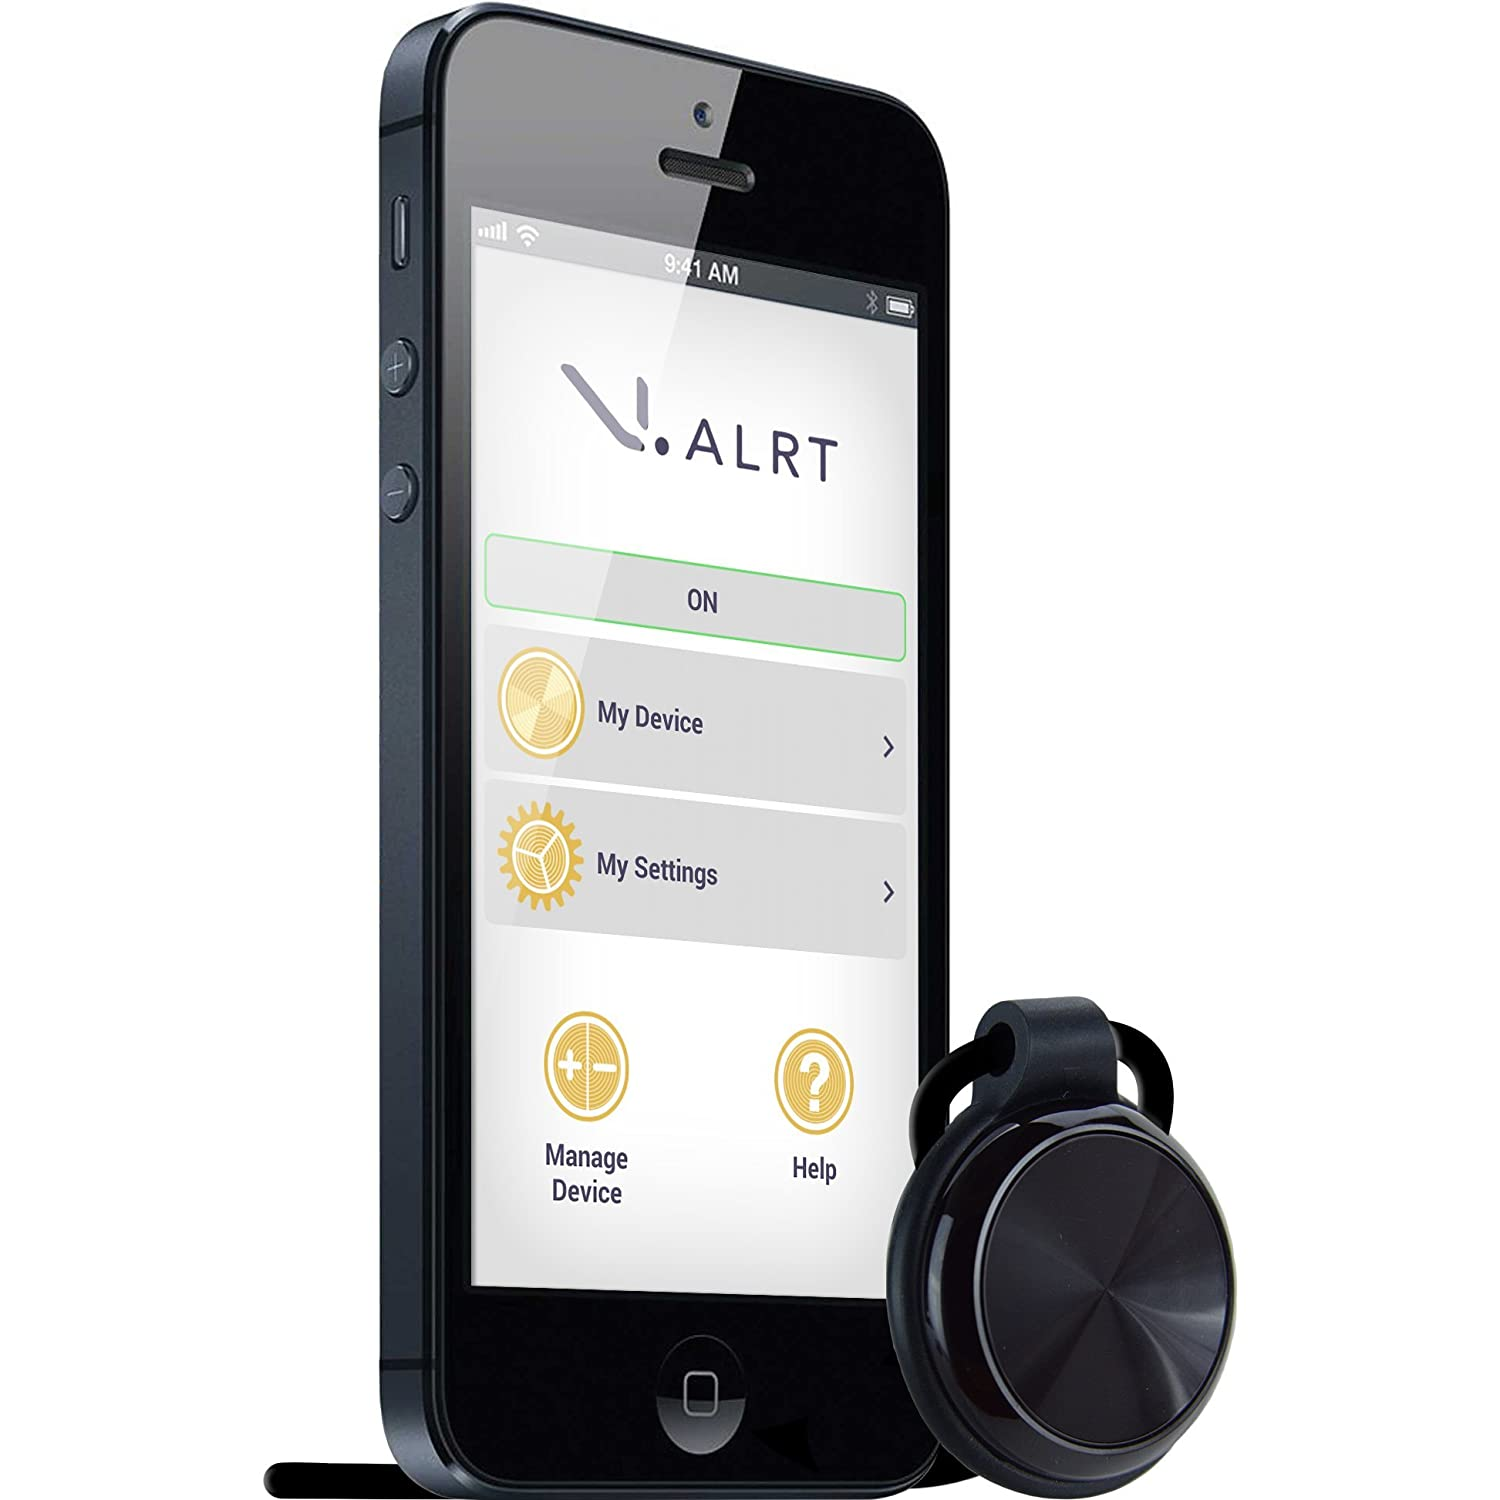 V.ALRT Wireless Personal Emergency Alert Device